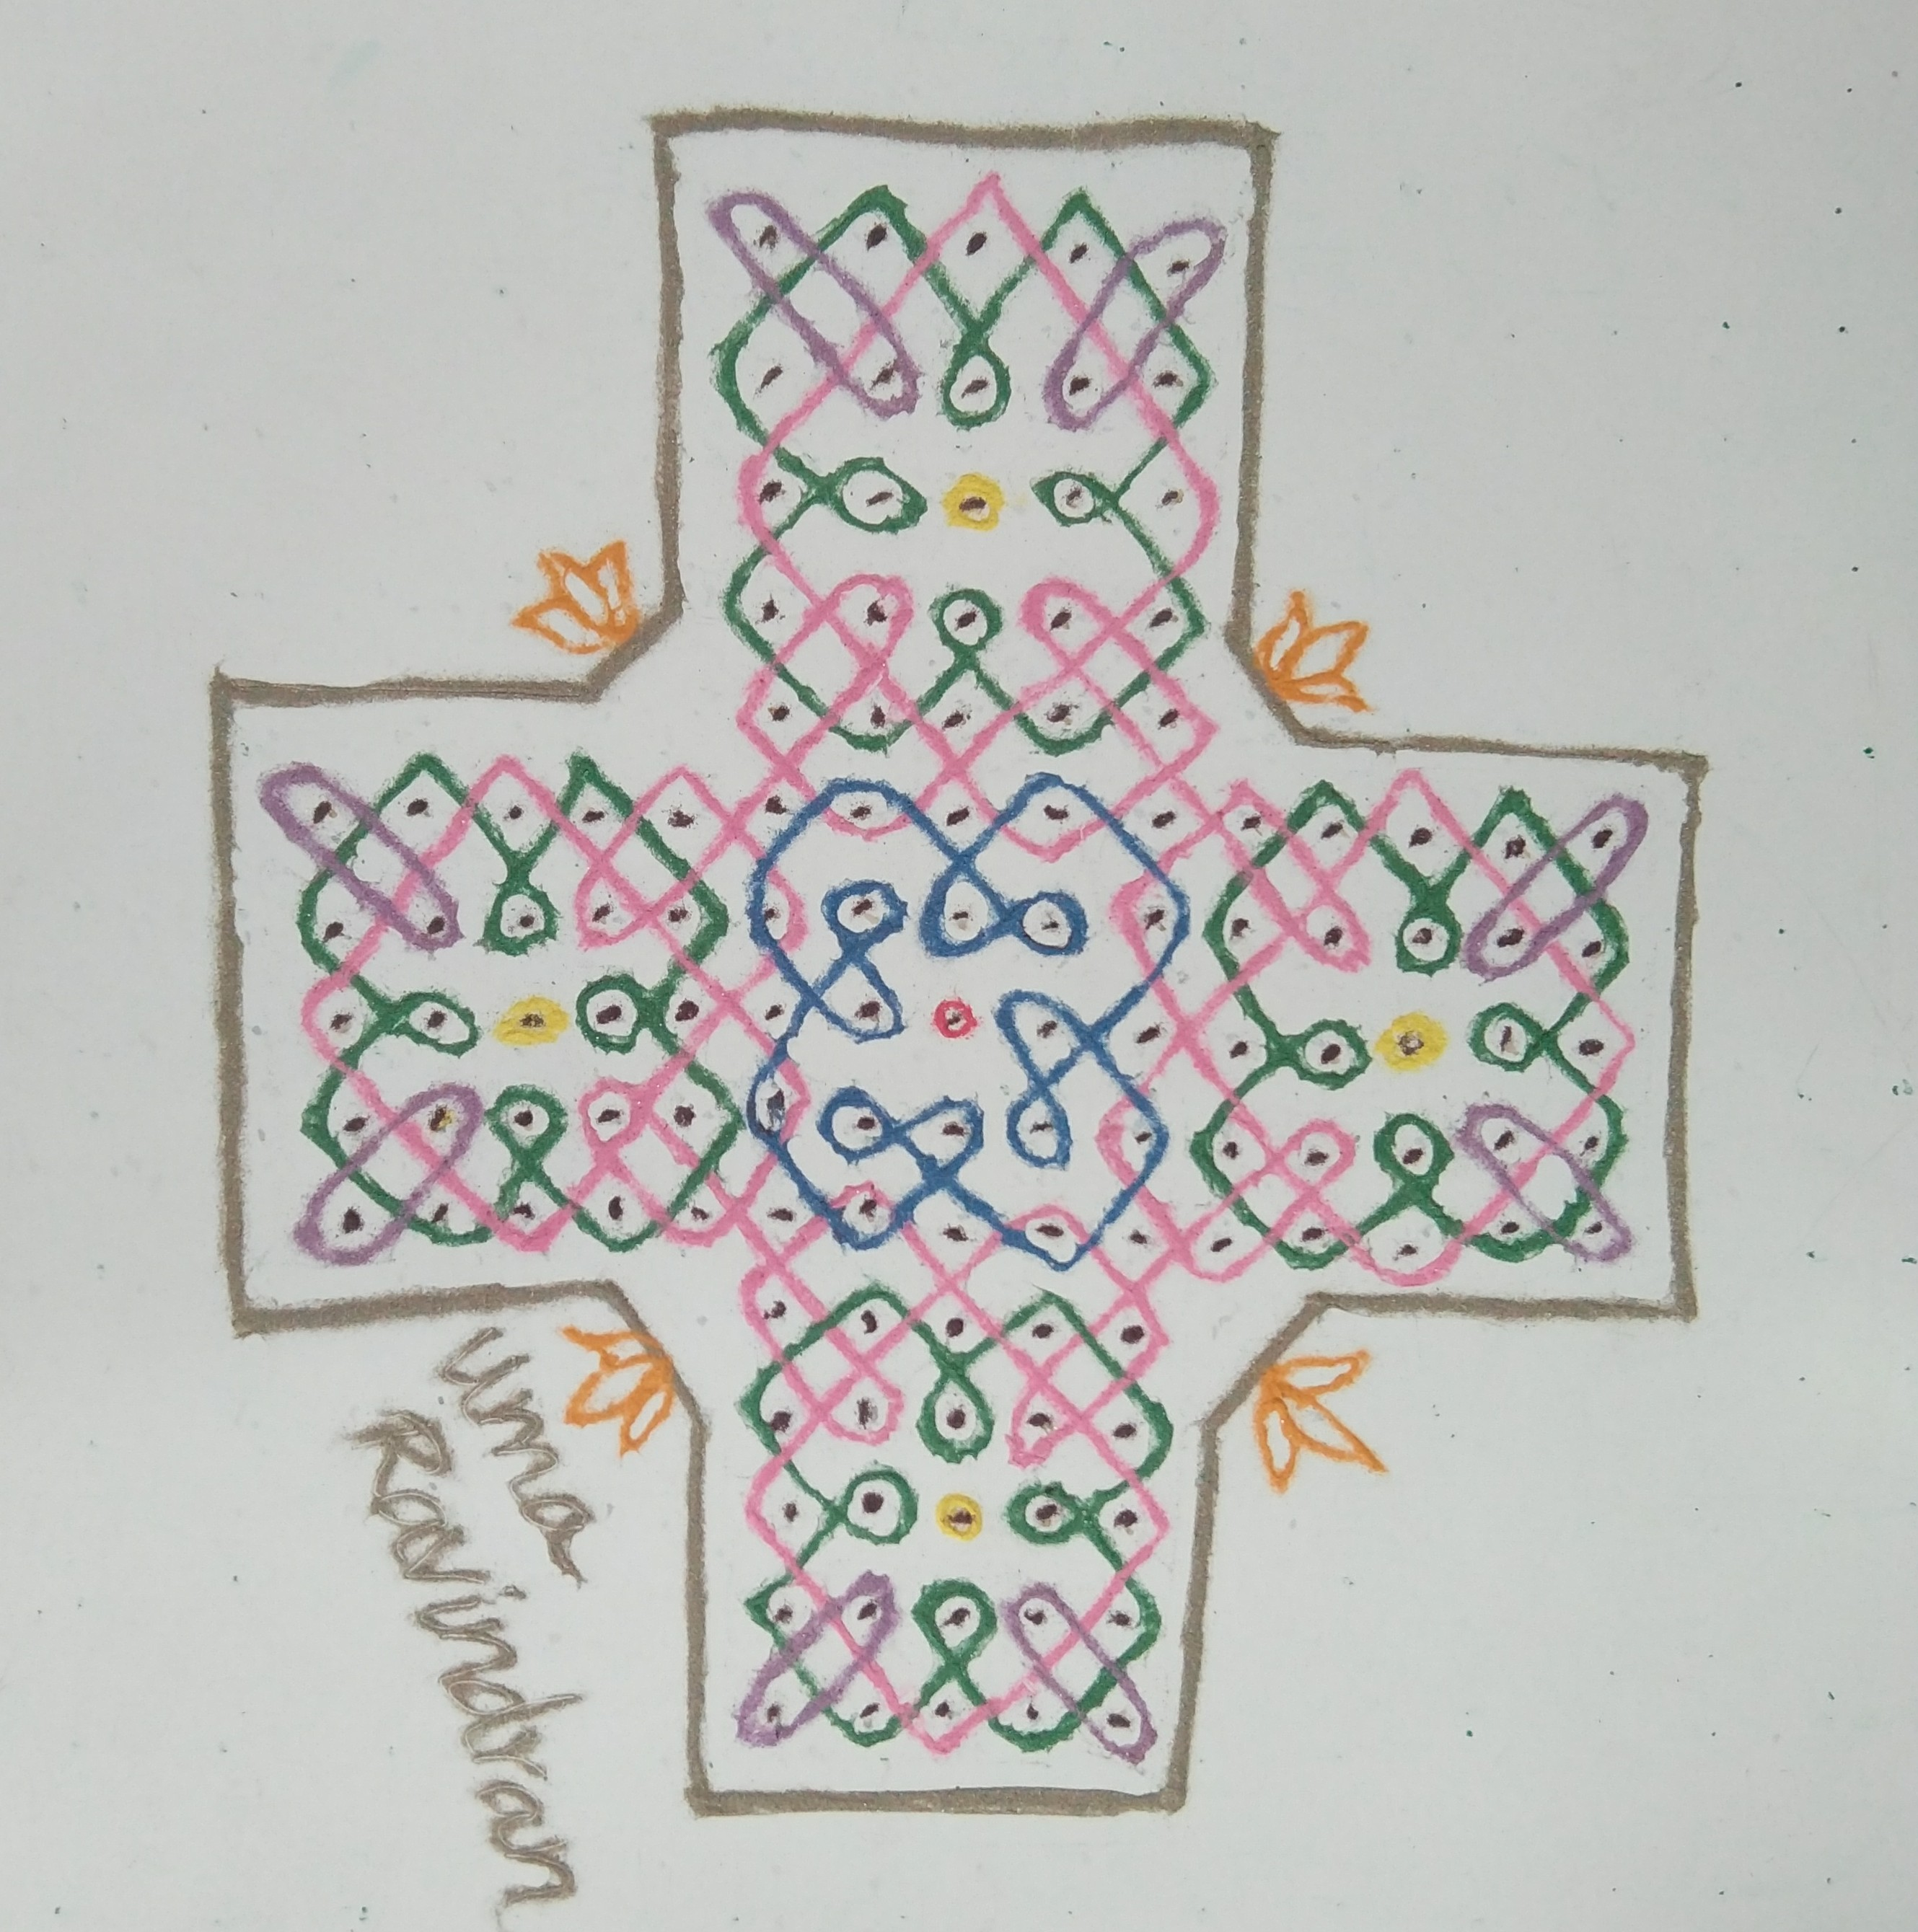 15 dots Sikku kolam || Simple design with curved lines and dots